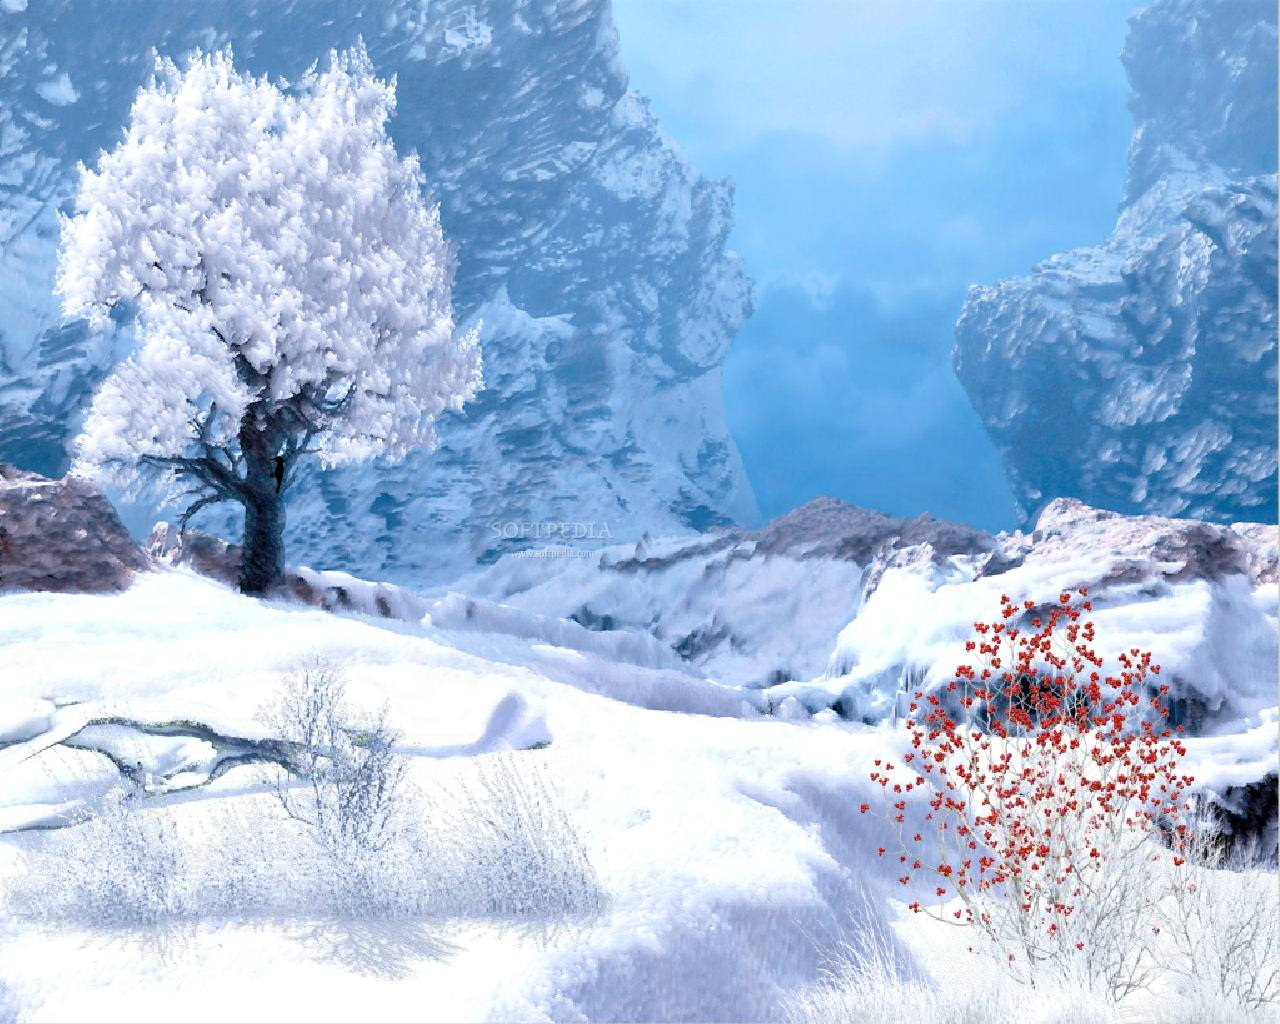 Winter in Mountain Animated Wallpaper Urban Art Wallpaper 1280x1024